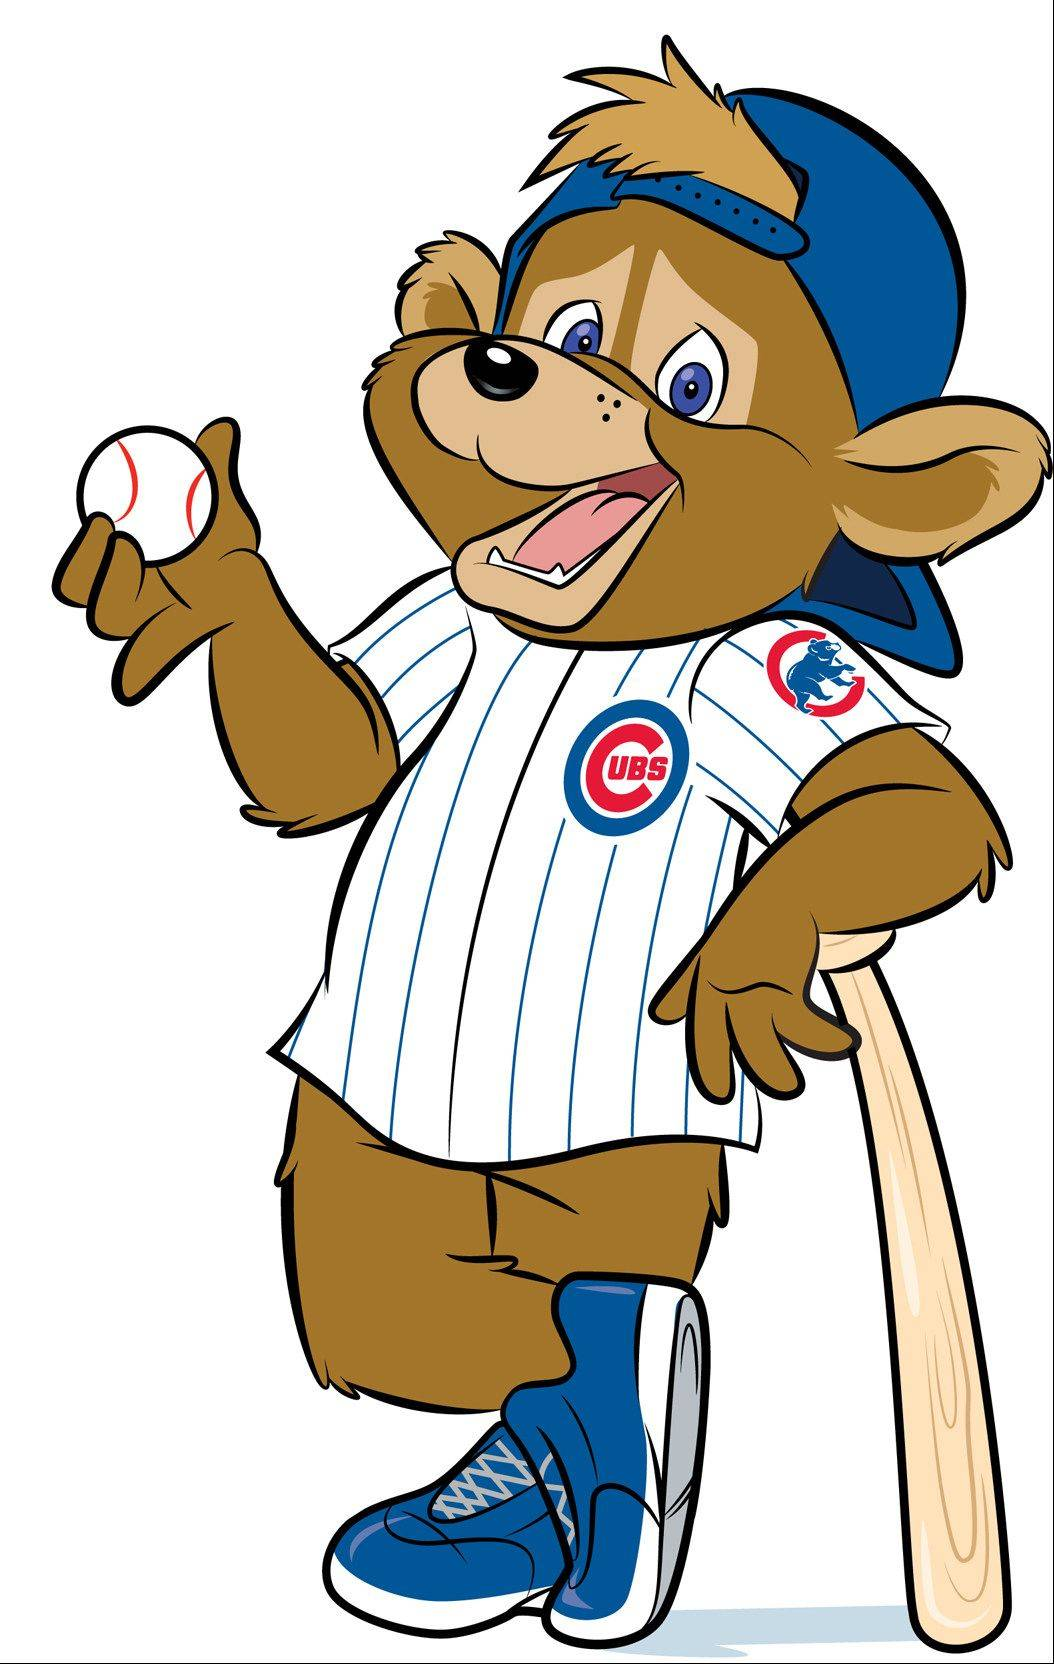 COURTESY OF THE CHICAGO CUBSIn his first week as the new Cubs' mascot, Clark the Cub has been a victim of abusive mocking on a variety of social media outlets.